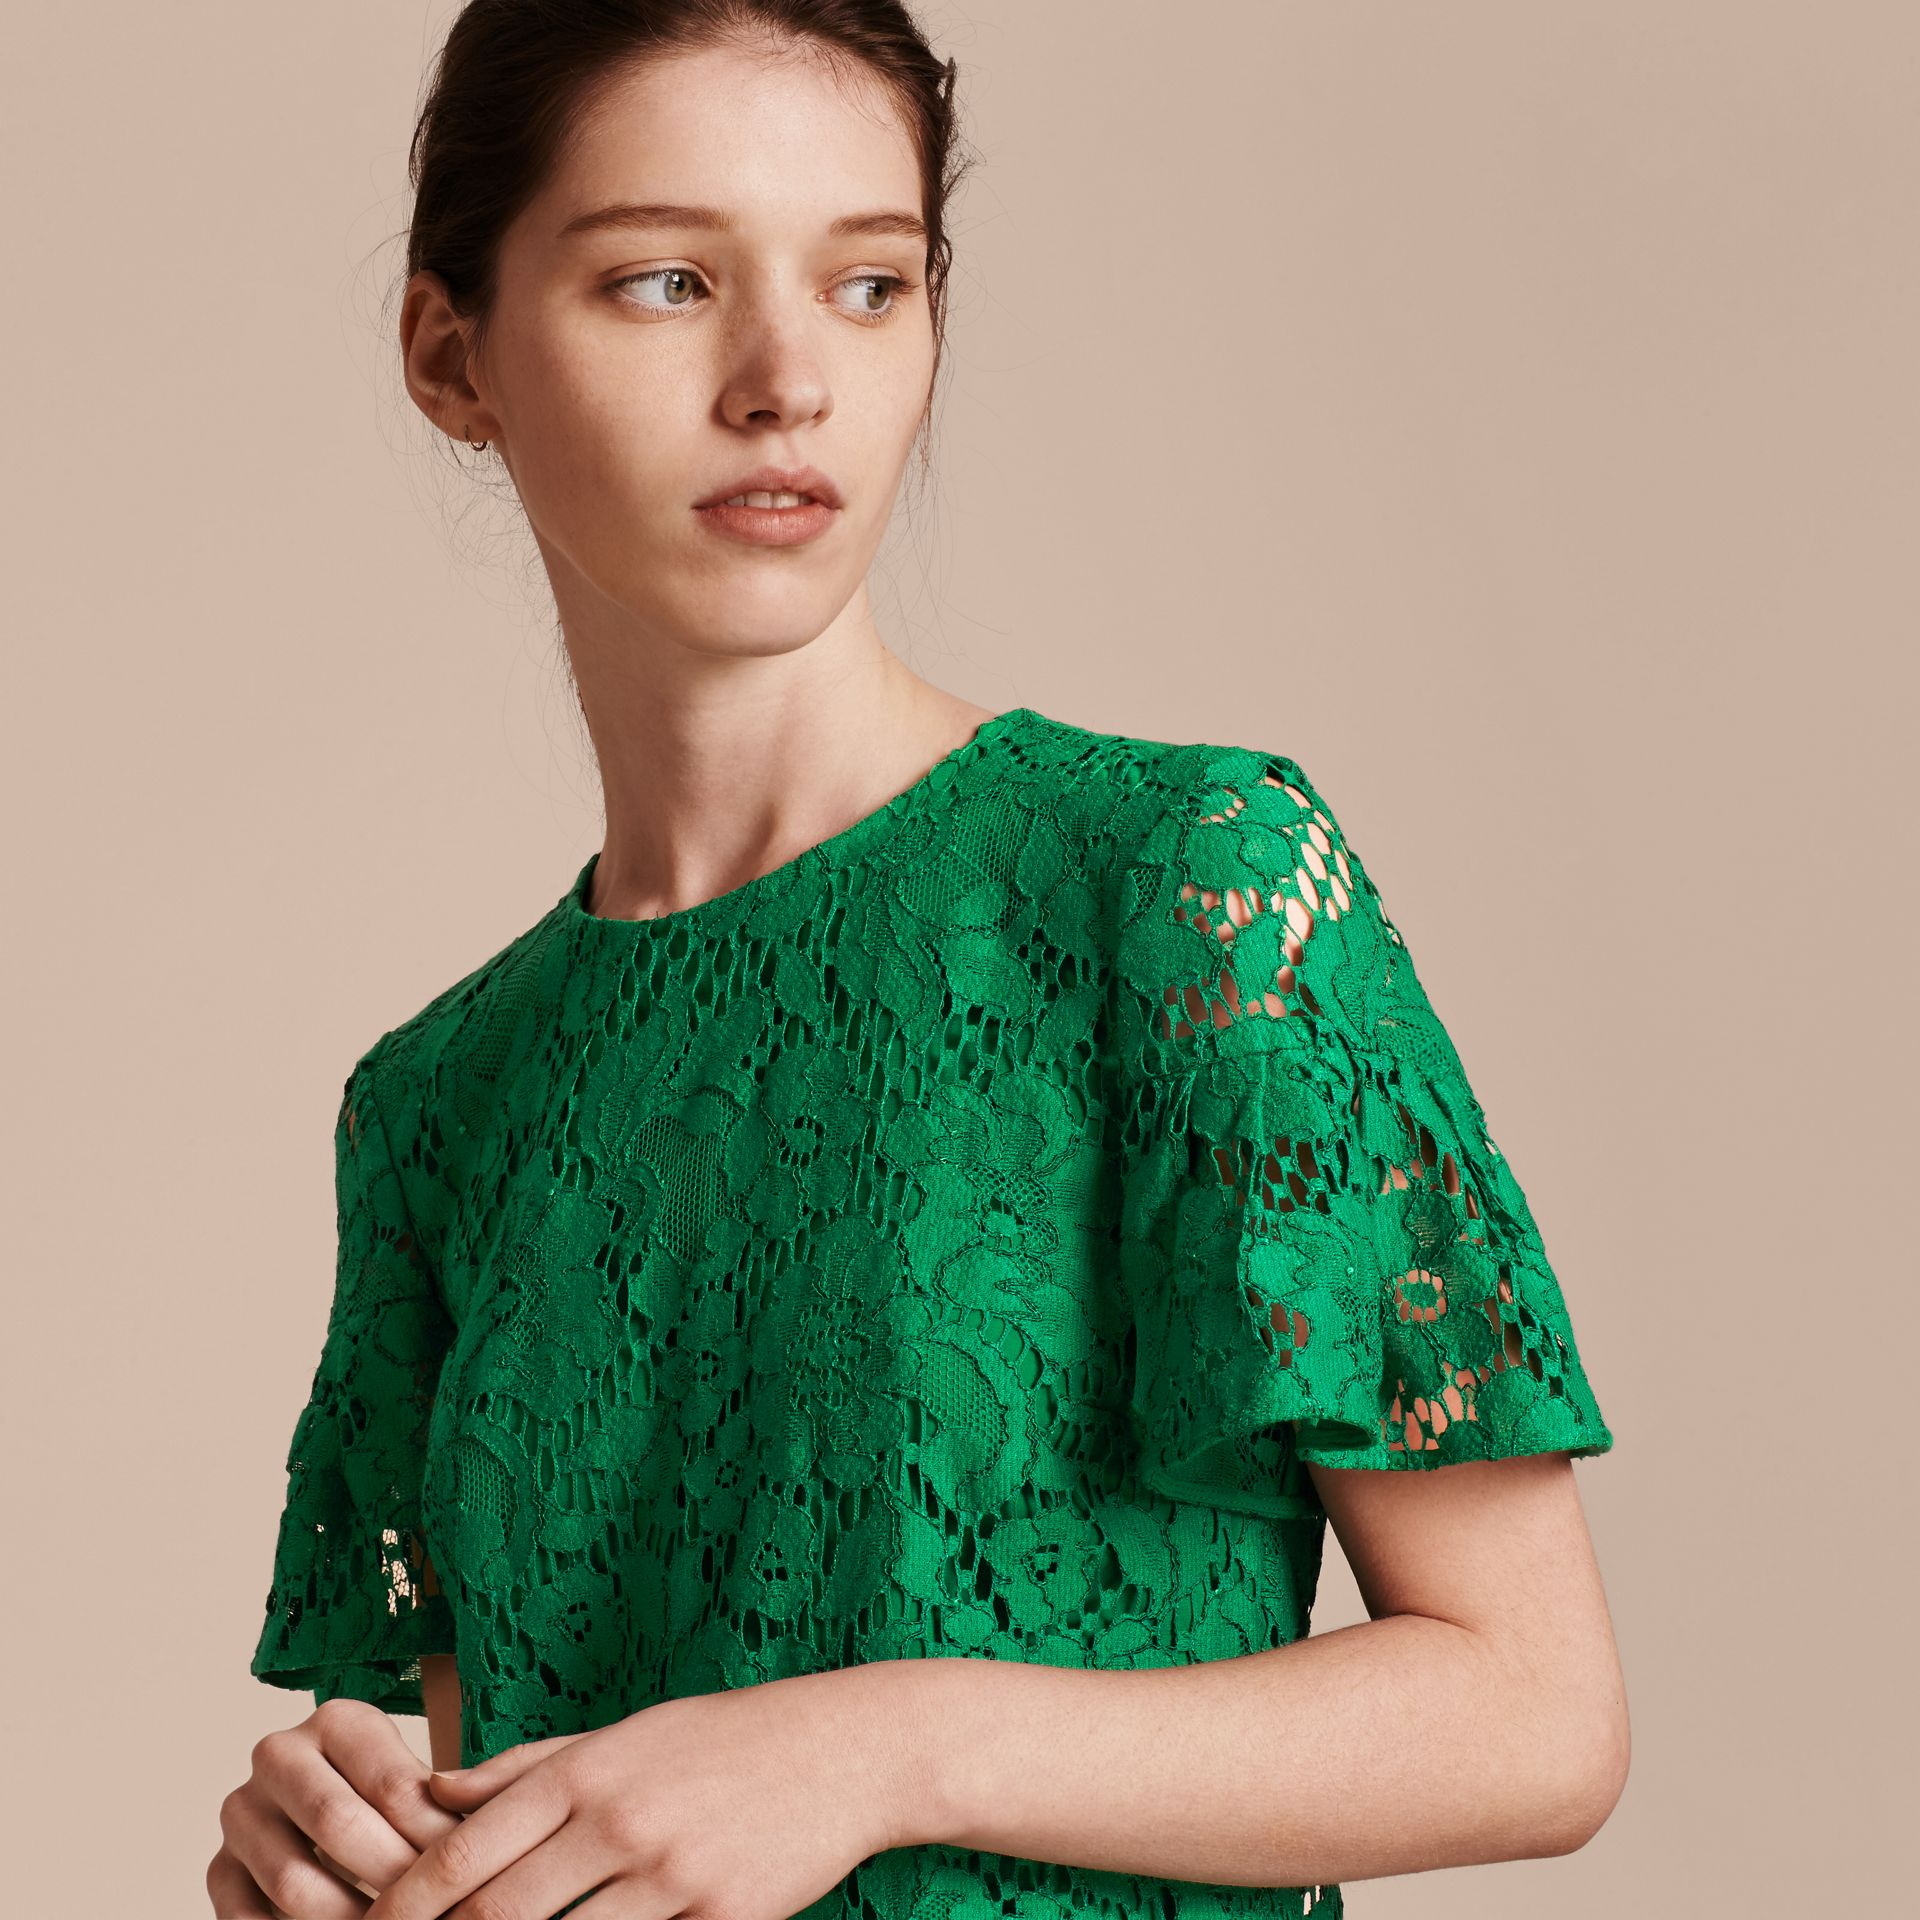 Macramé Lace Short Shift Dress with Ruffle Sleeves Kelly Green - gallery image 5